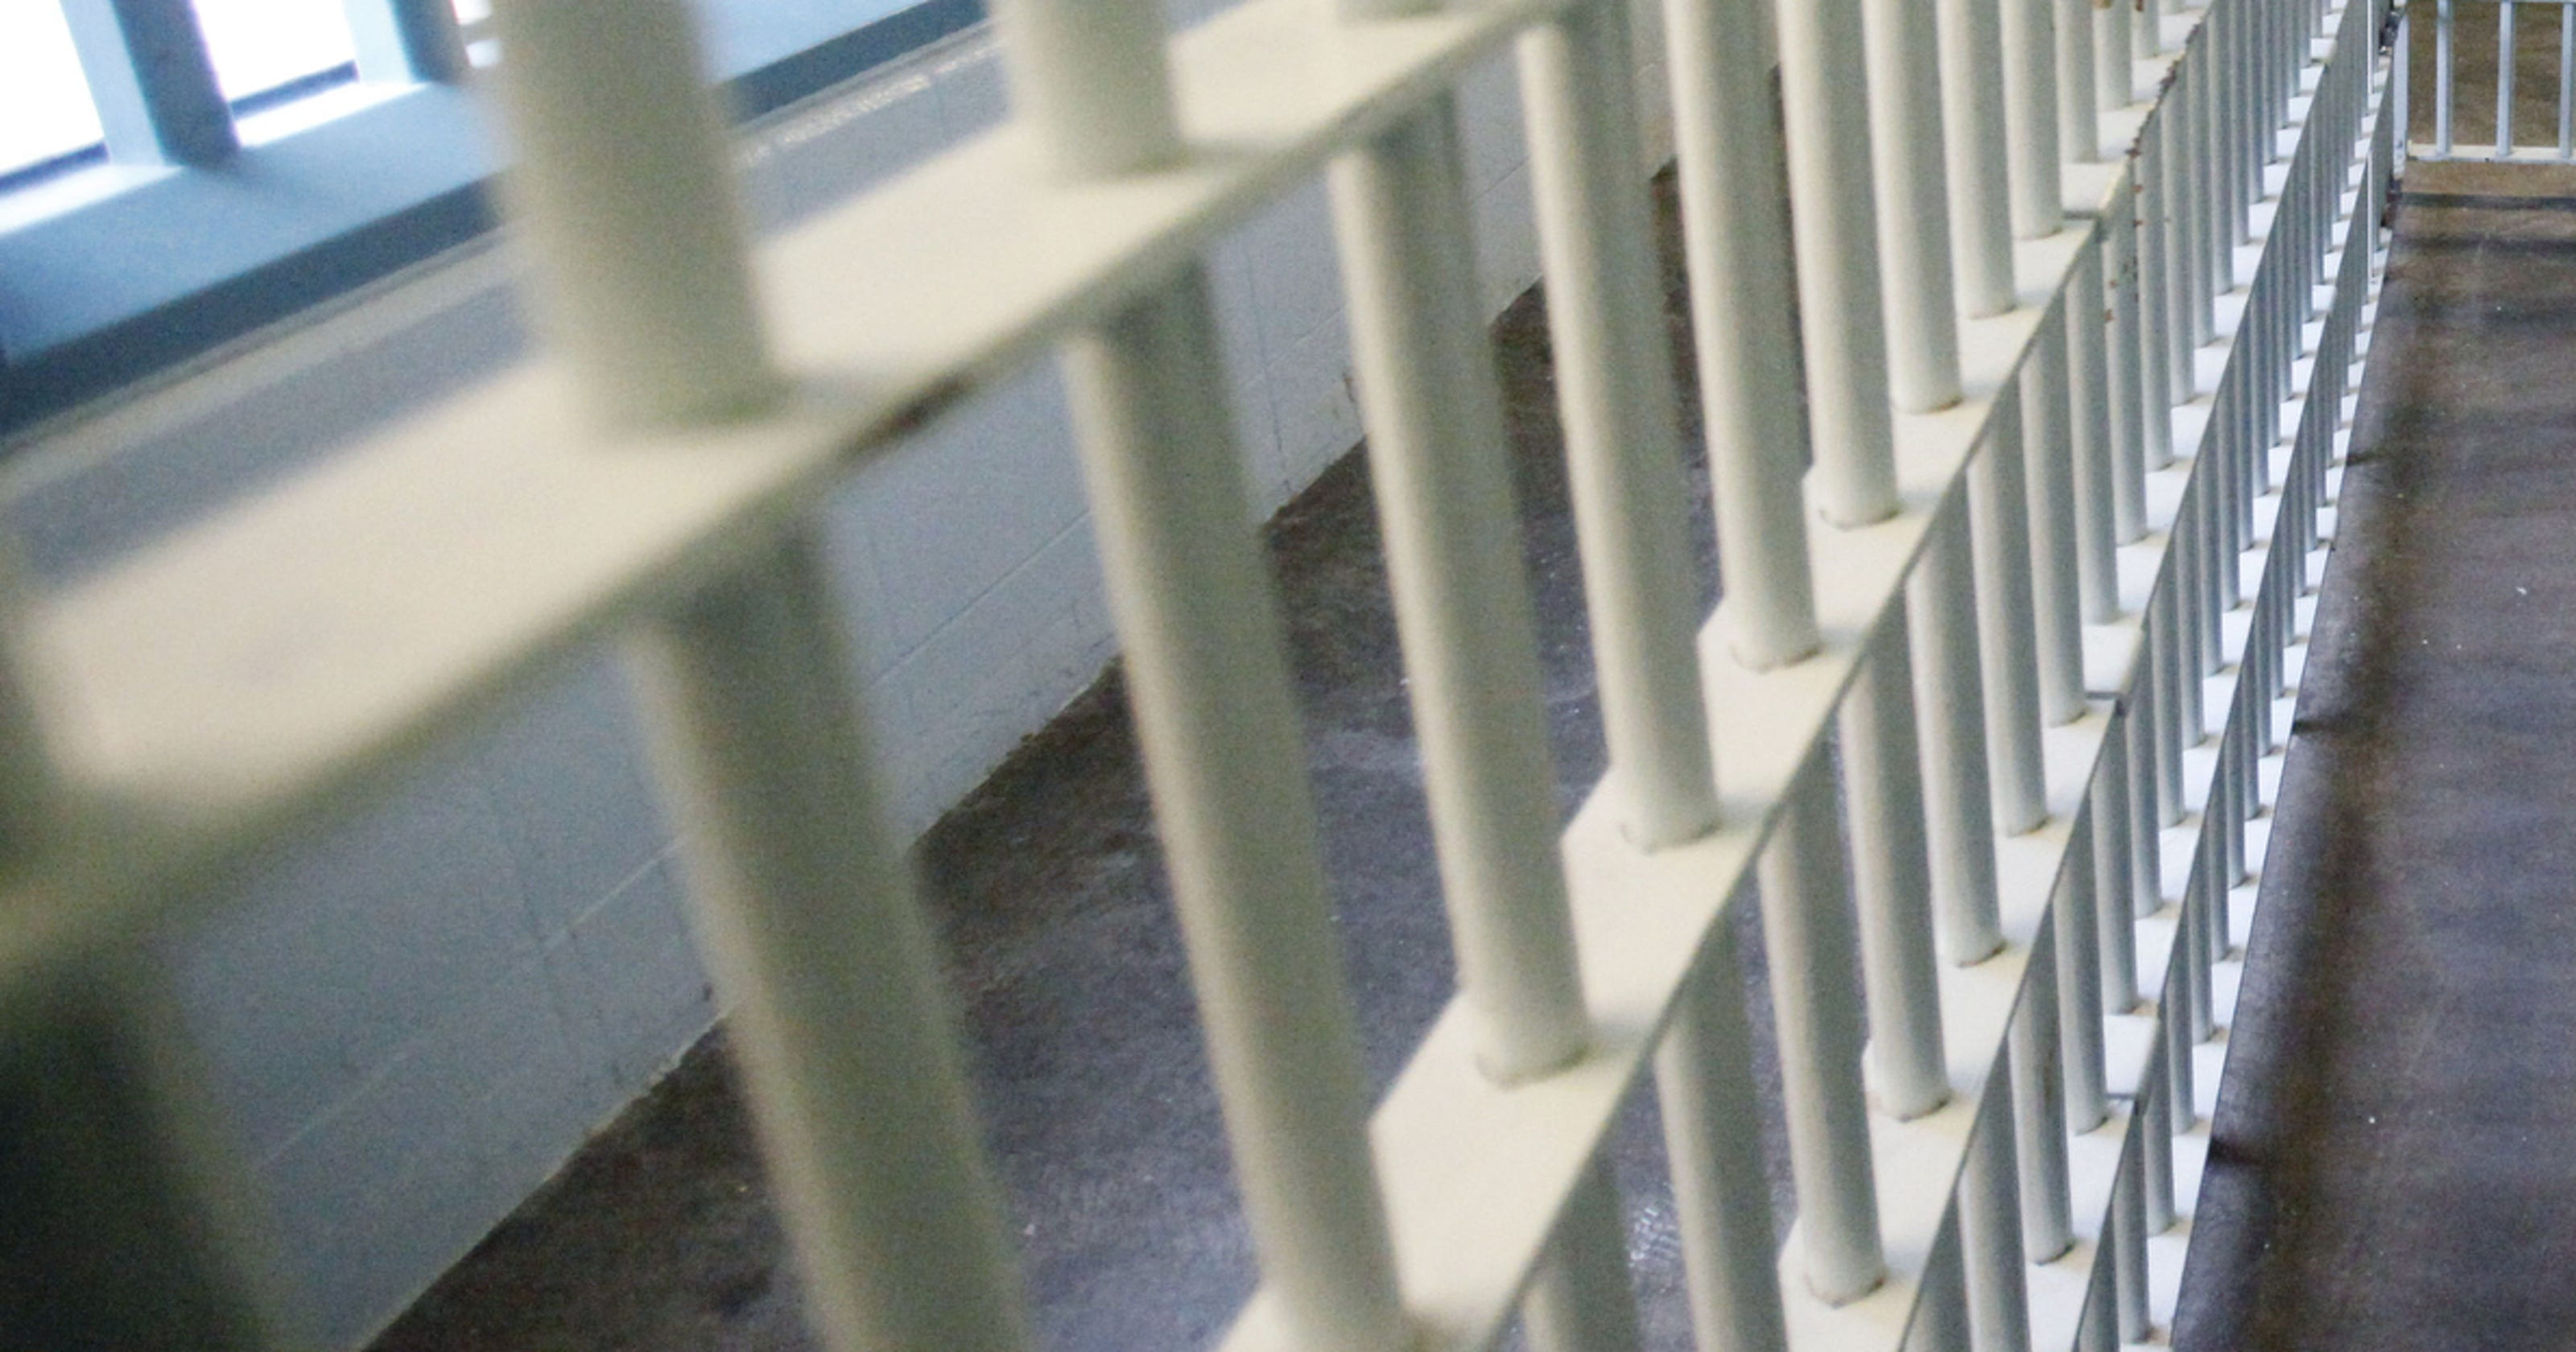 Woman accidentally is put into male cellblock at Marion County Jail